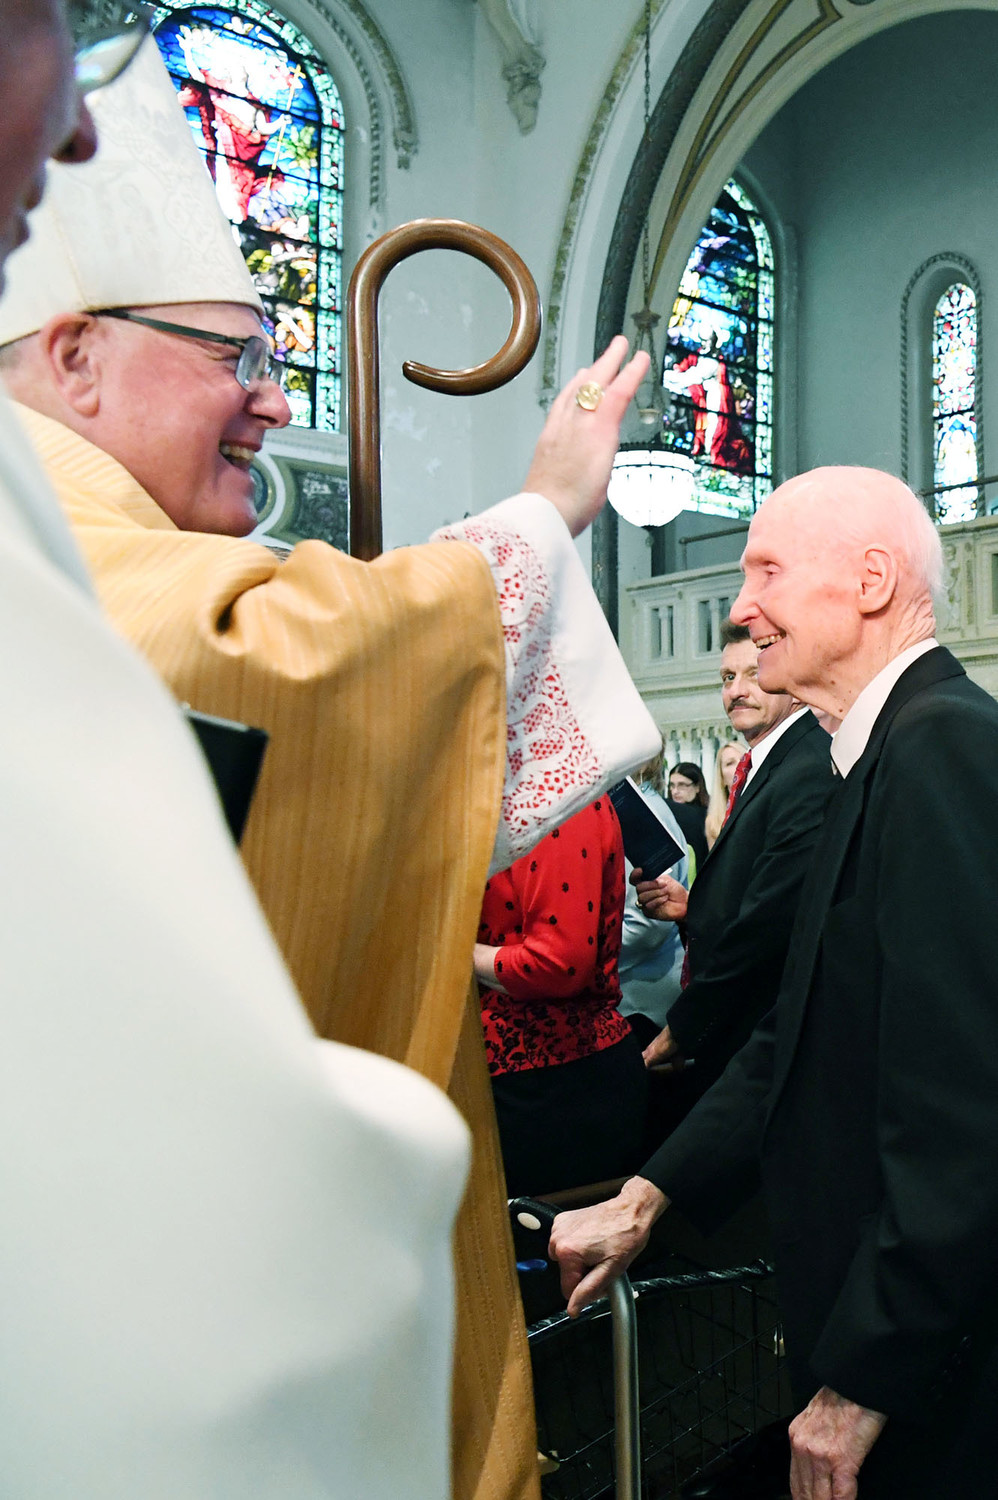 Cardinal Dolan paused to greet Brother James Kelly, F.S.C., a former principal of St. Peter's, at the end of Mass.